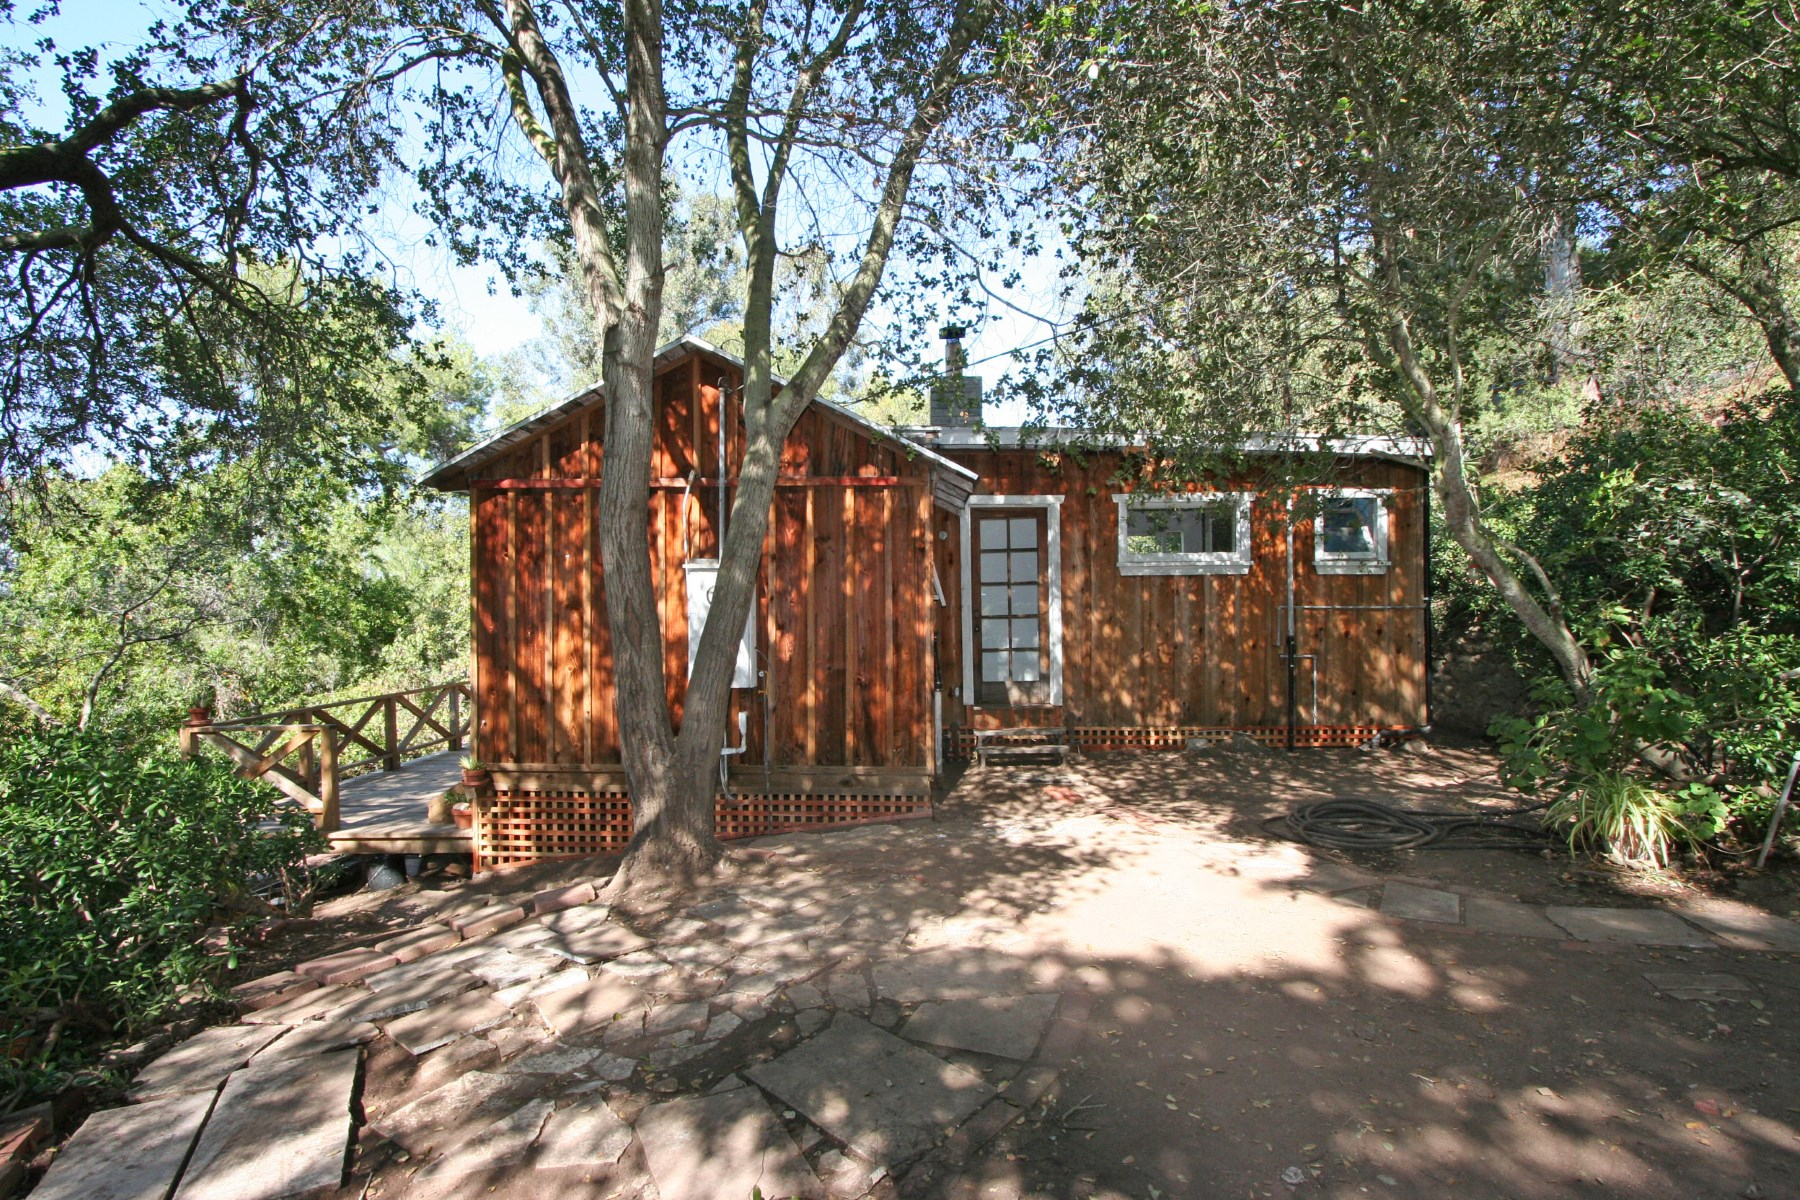 Single Family Home for Sale at Magical setting for the Tiny rustic cabin Topanga, California 90290 United States